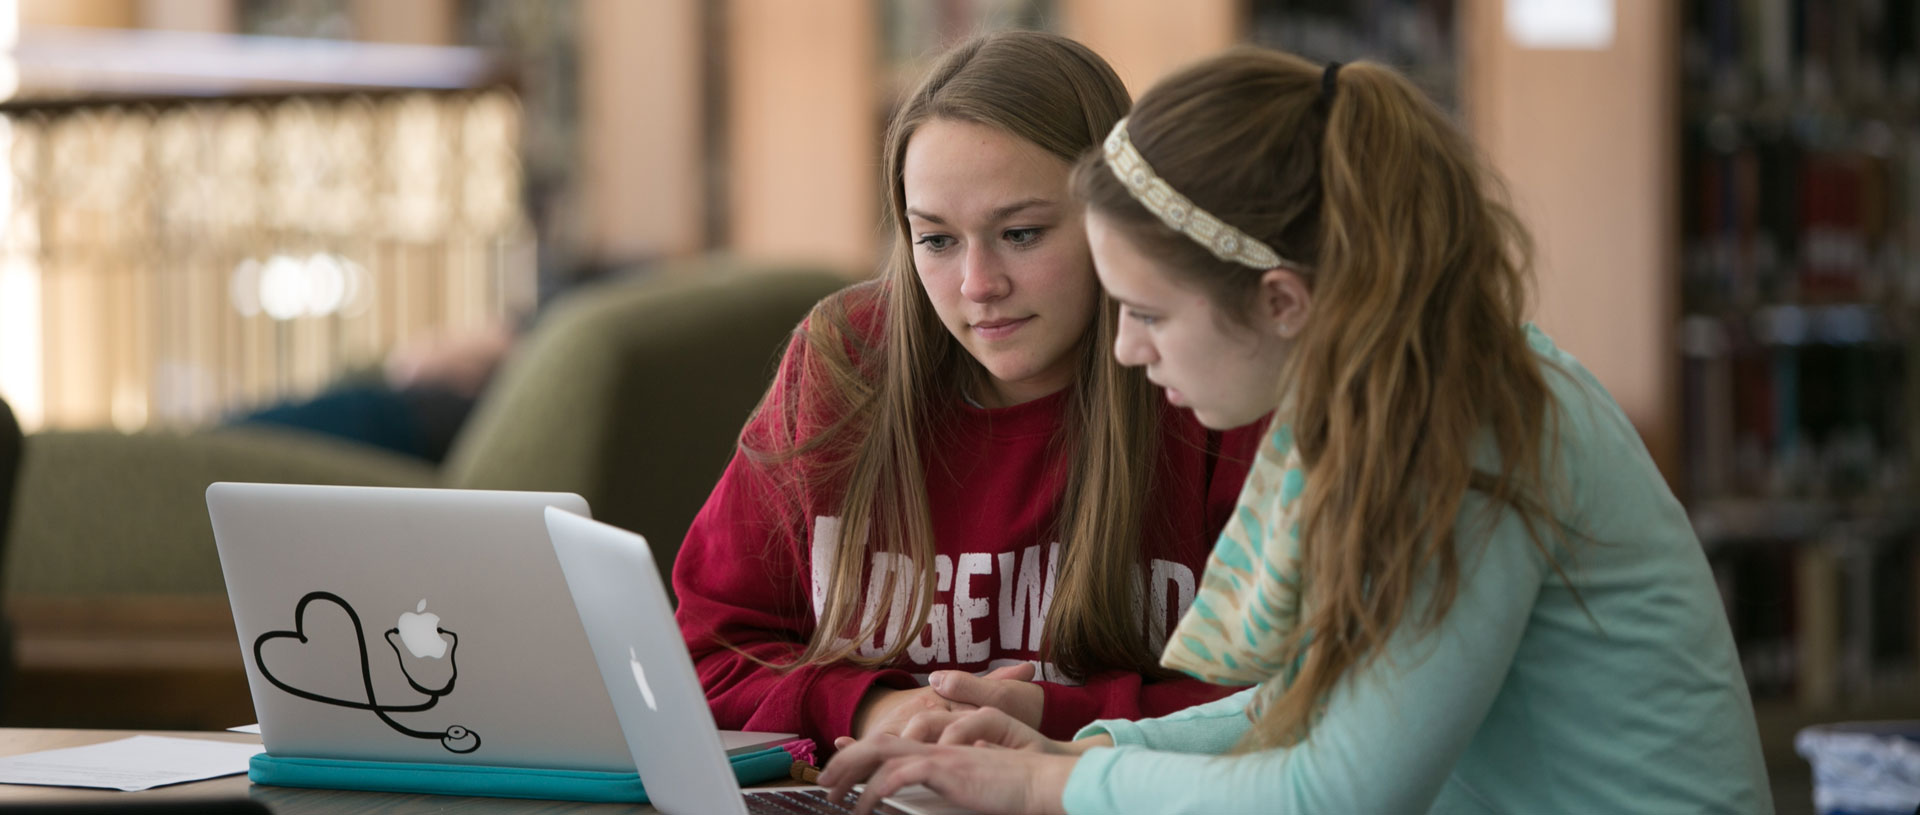 Undergrad females studying in the Library.